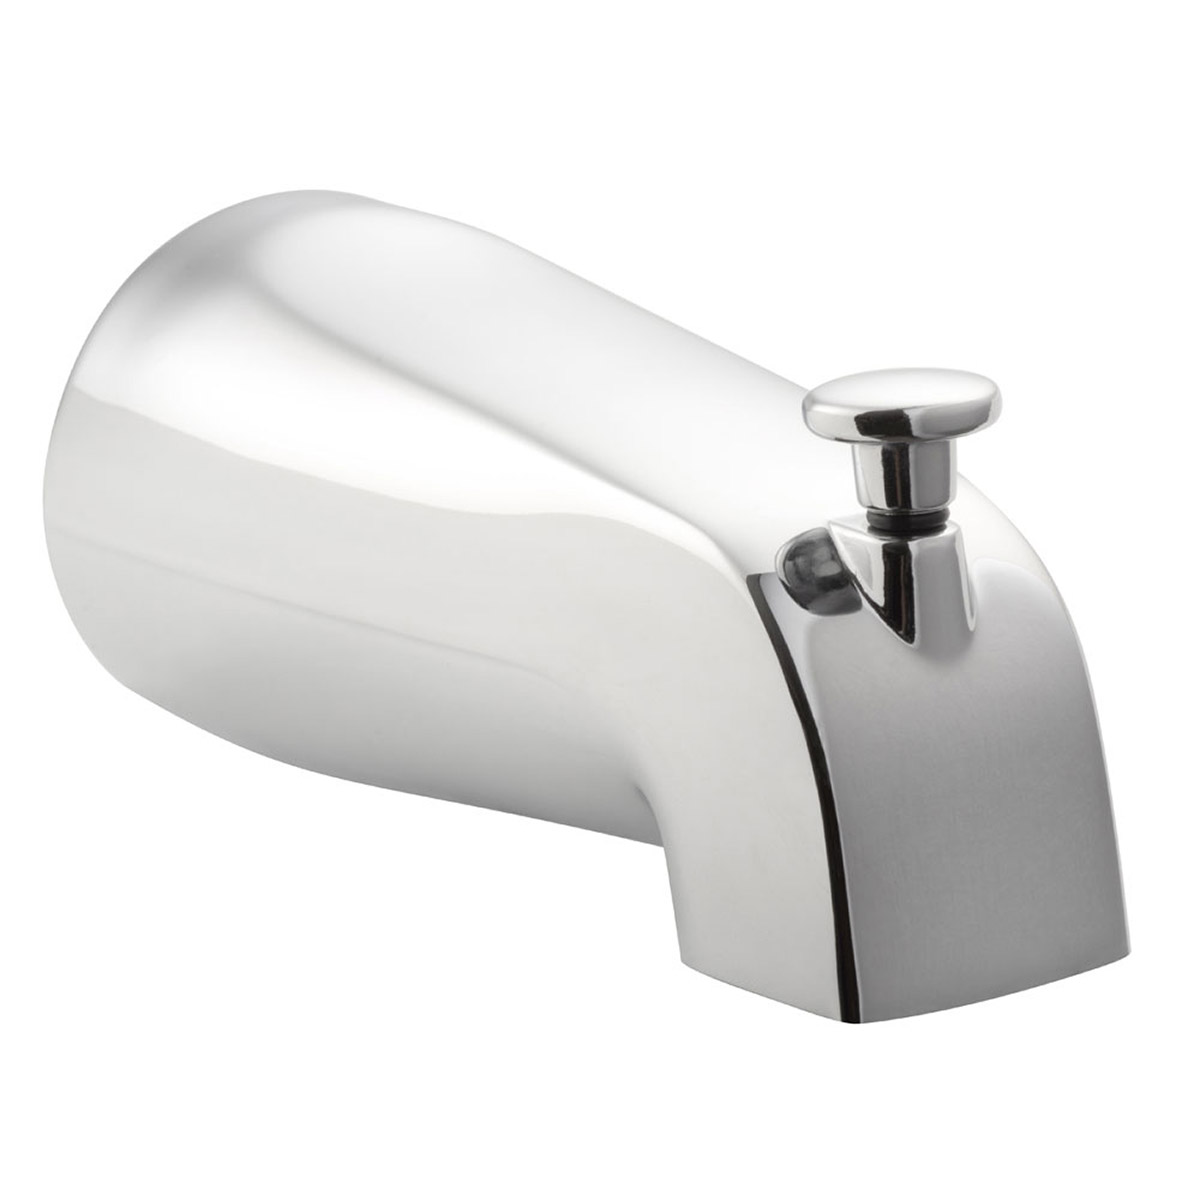 PULSE ShowerSpas Chrome Tub Spout with Diverter